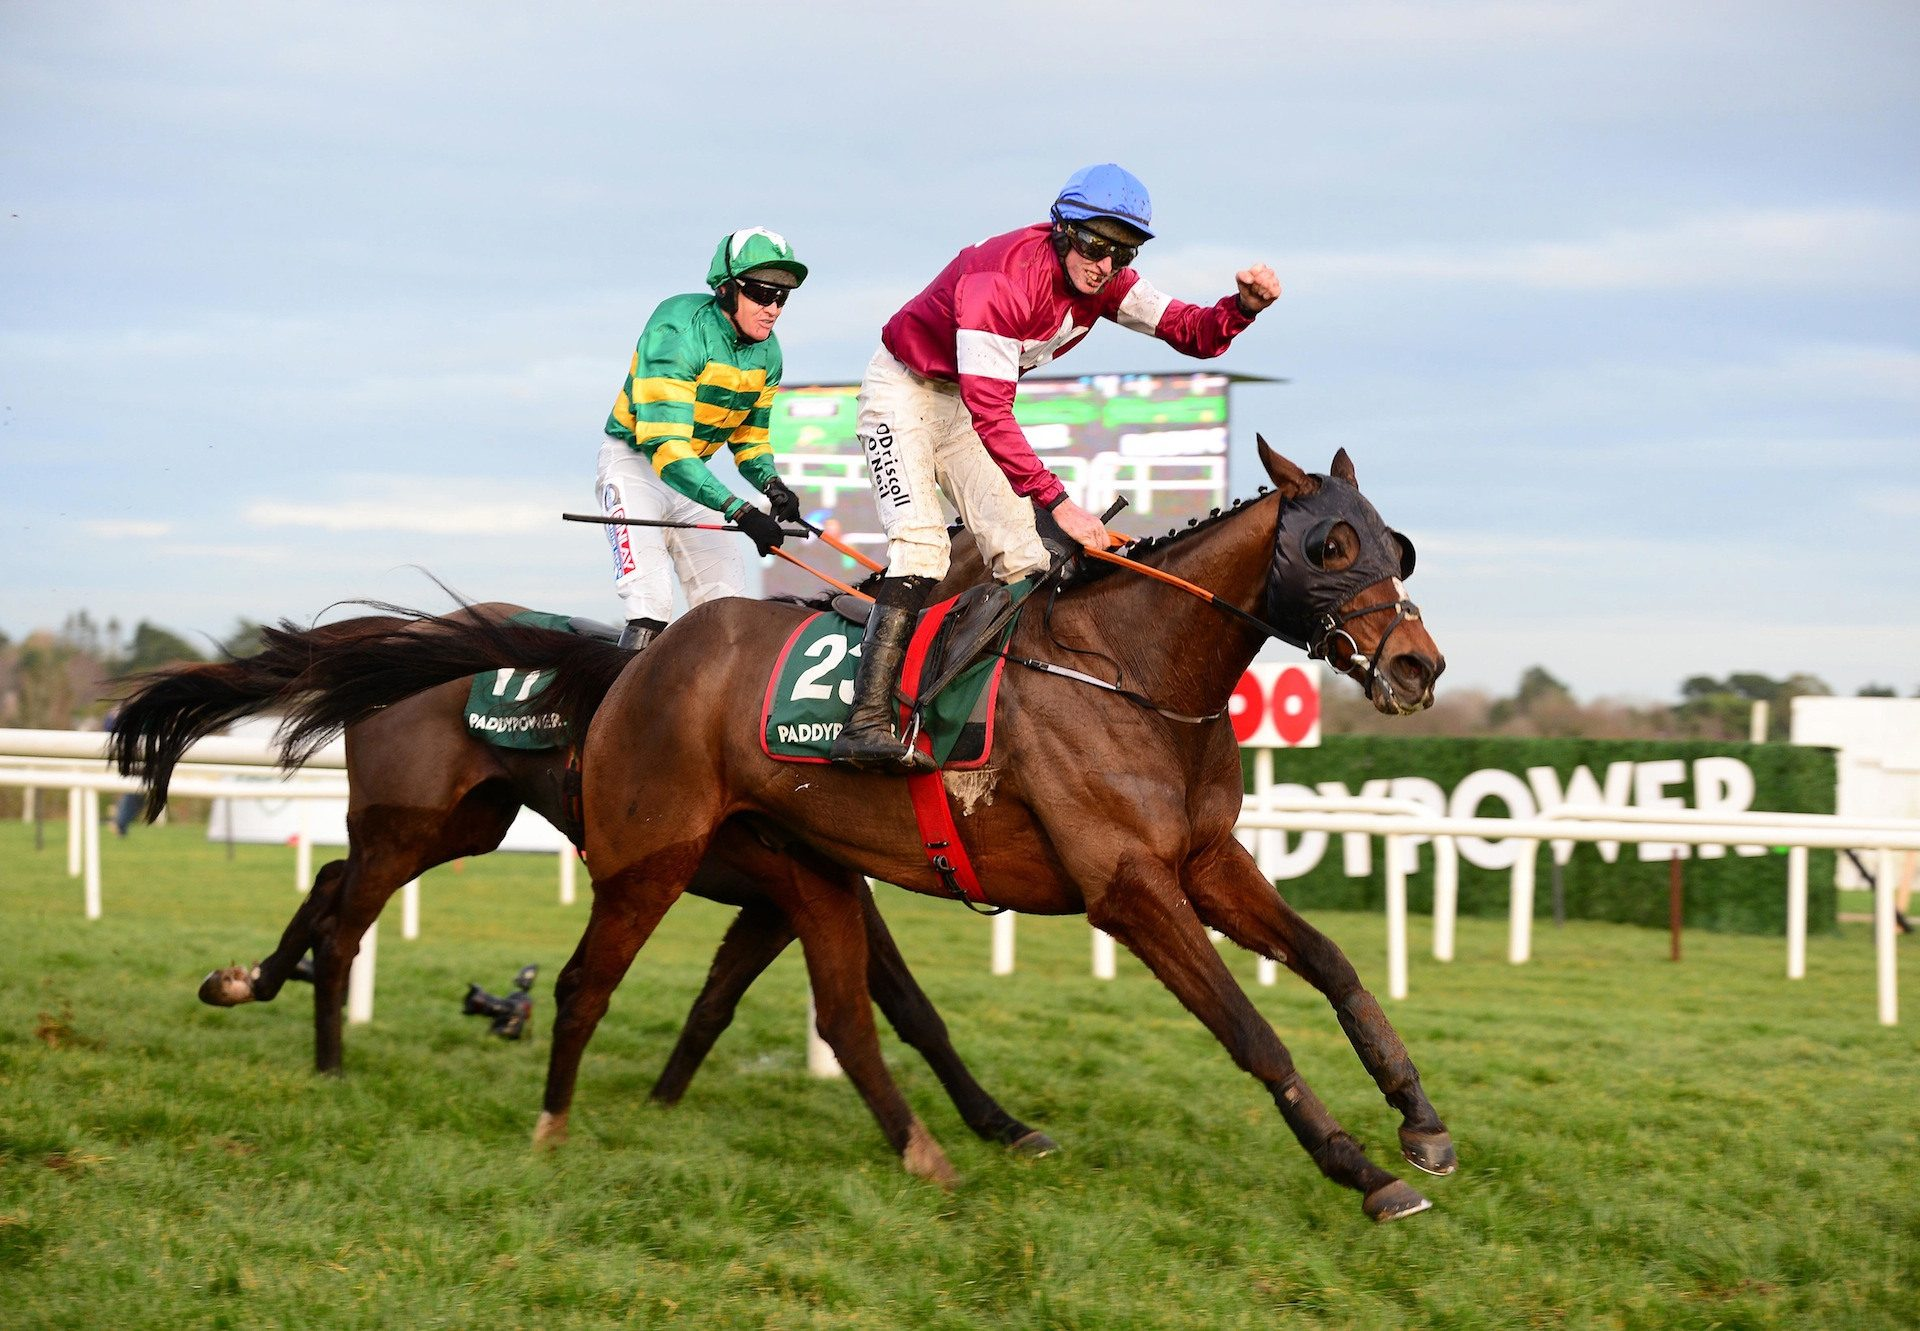 Roaring Bull (Milan) Wins The Paddy Power Chase At Leopardstown